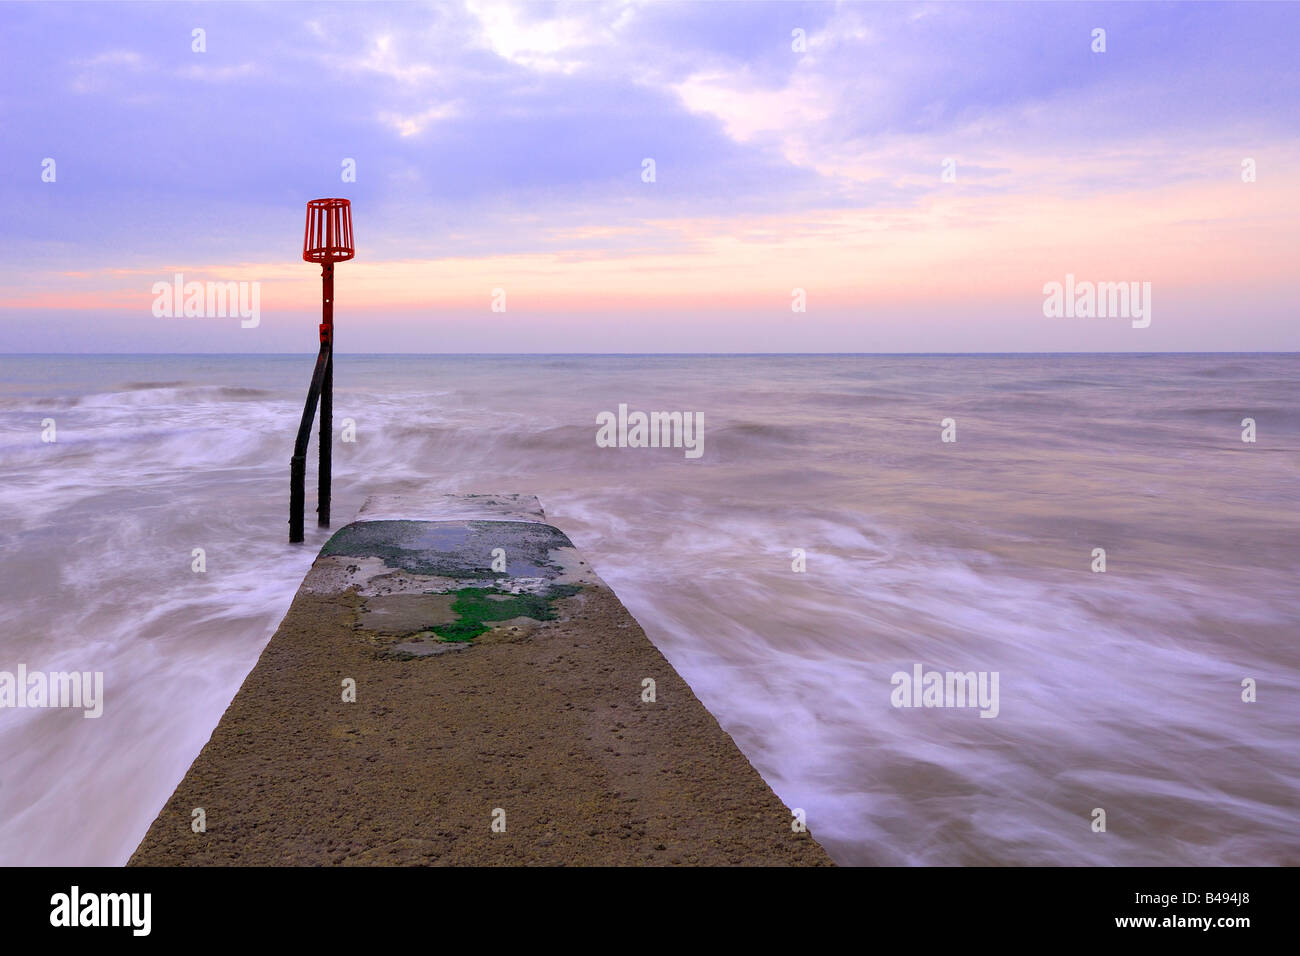 Sunrise from the beach - Stock Image